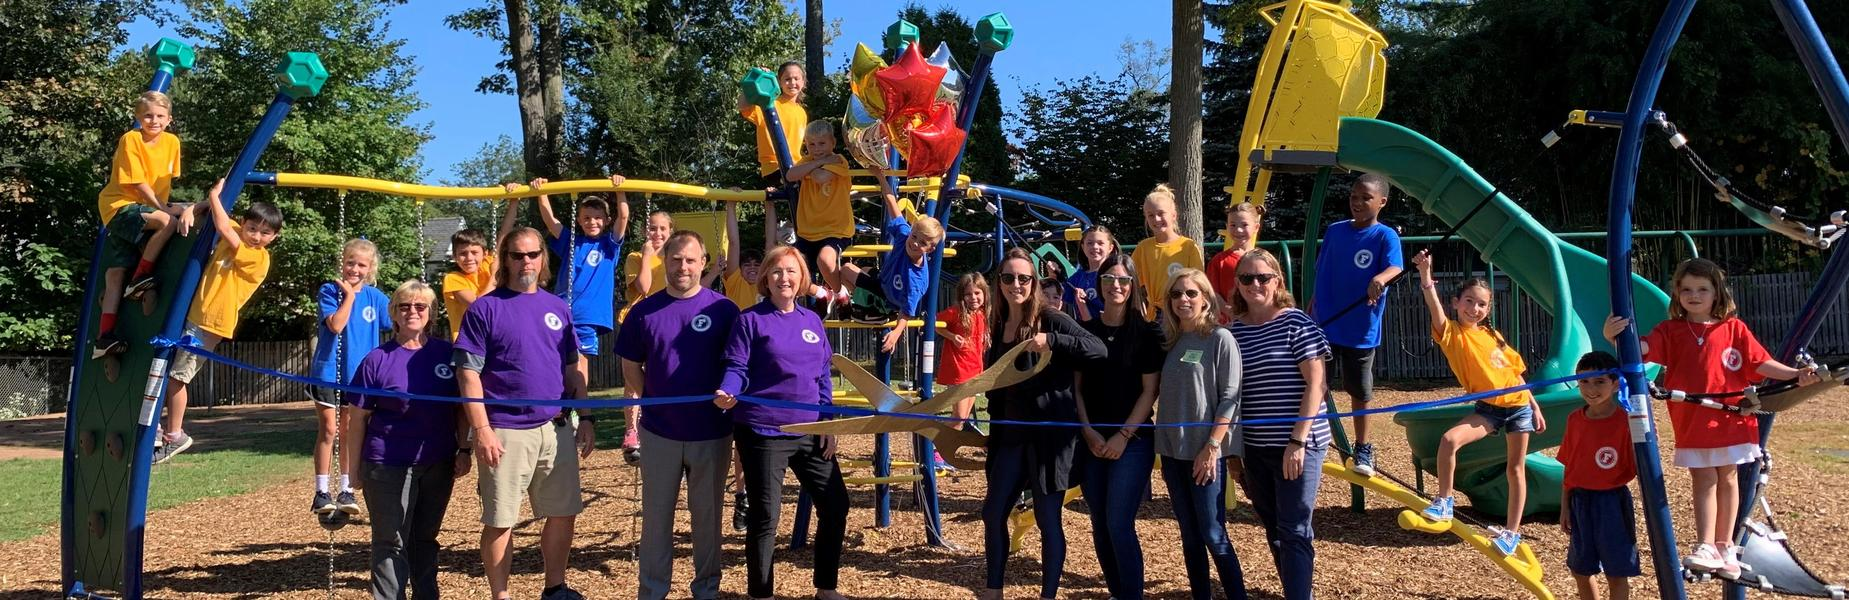 Photo of Franklin School staff and students posing with new playground addition during ribbon cutting ceremony.